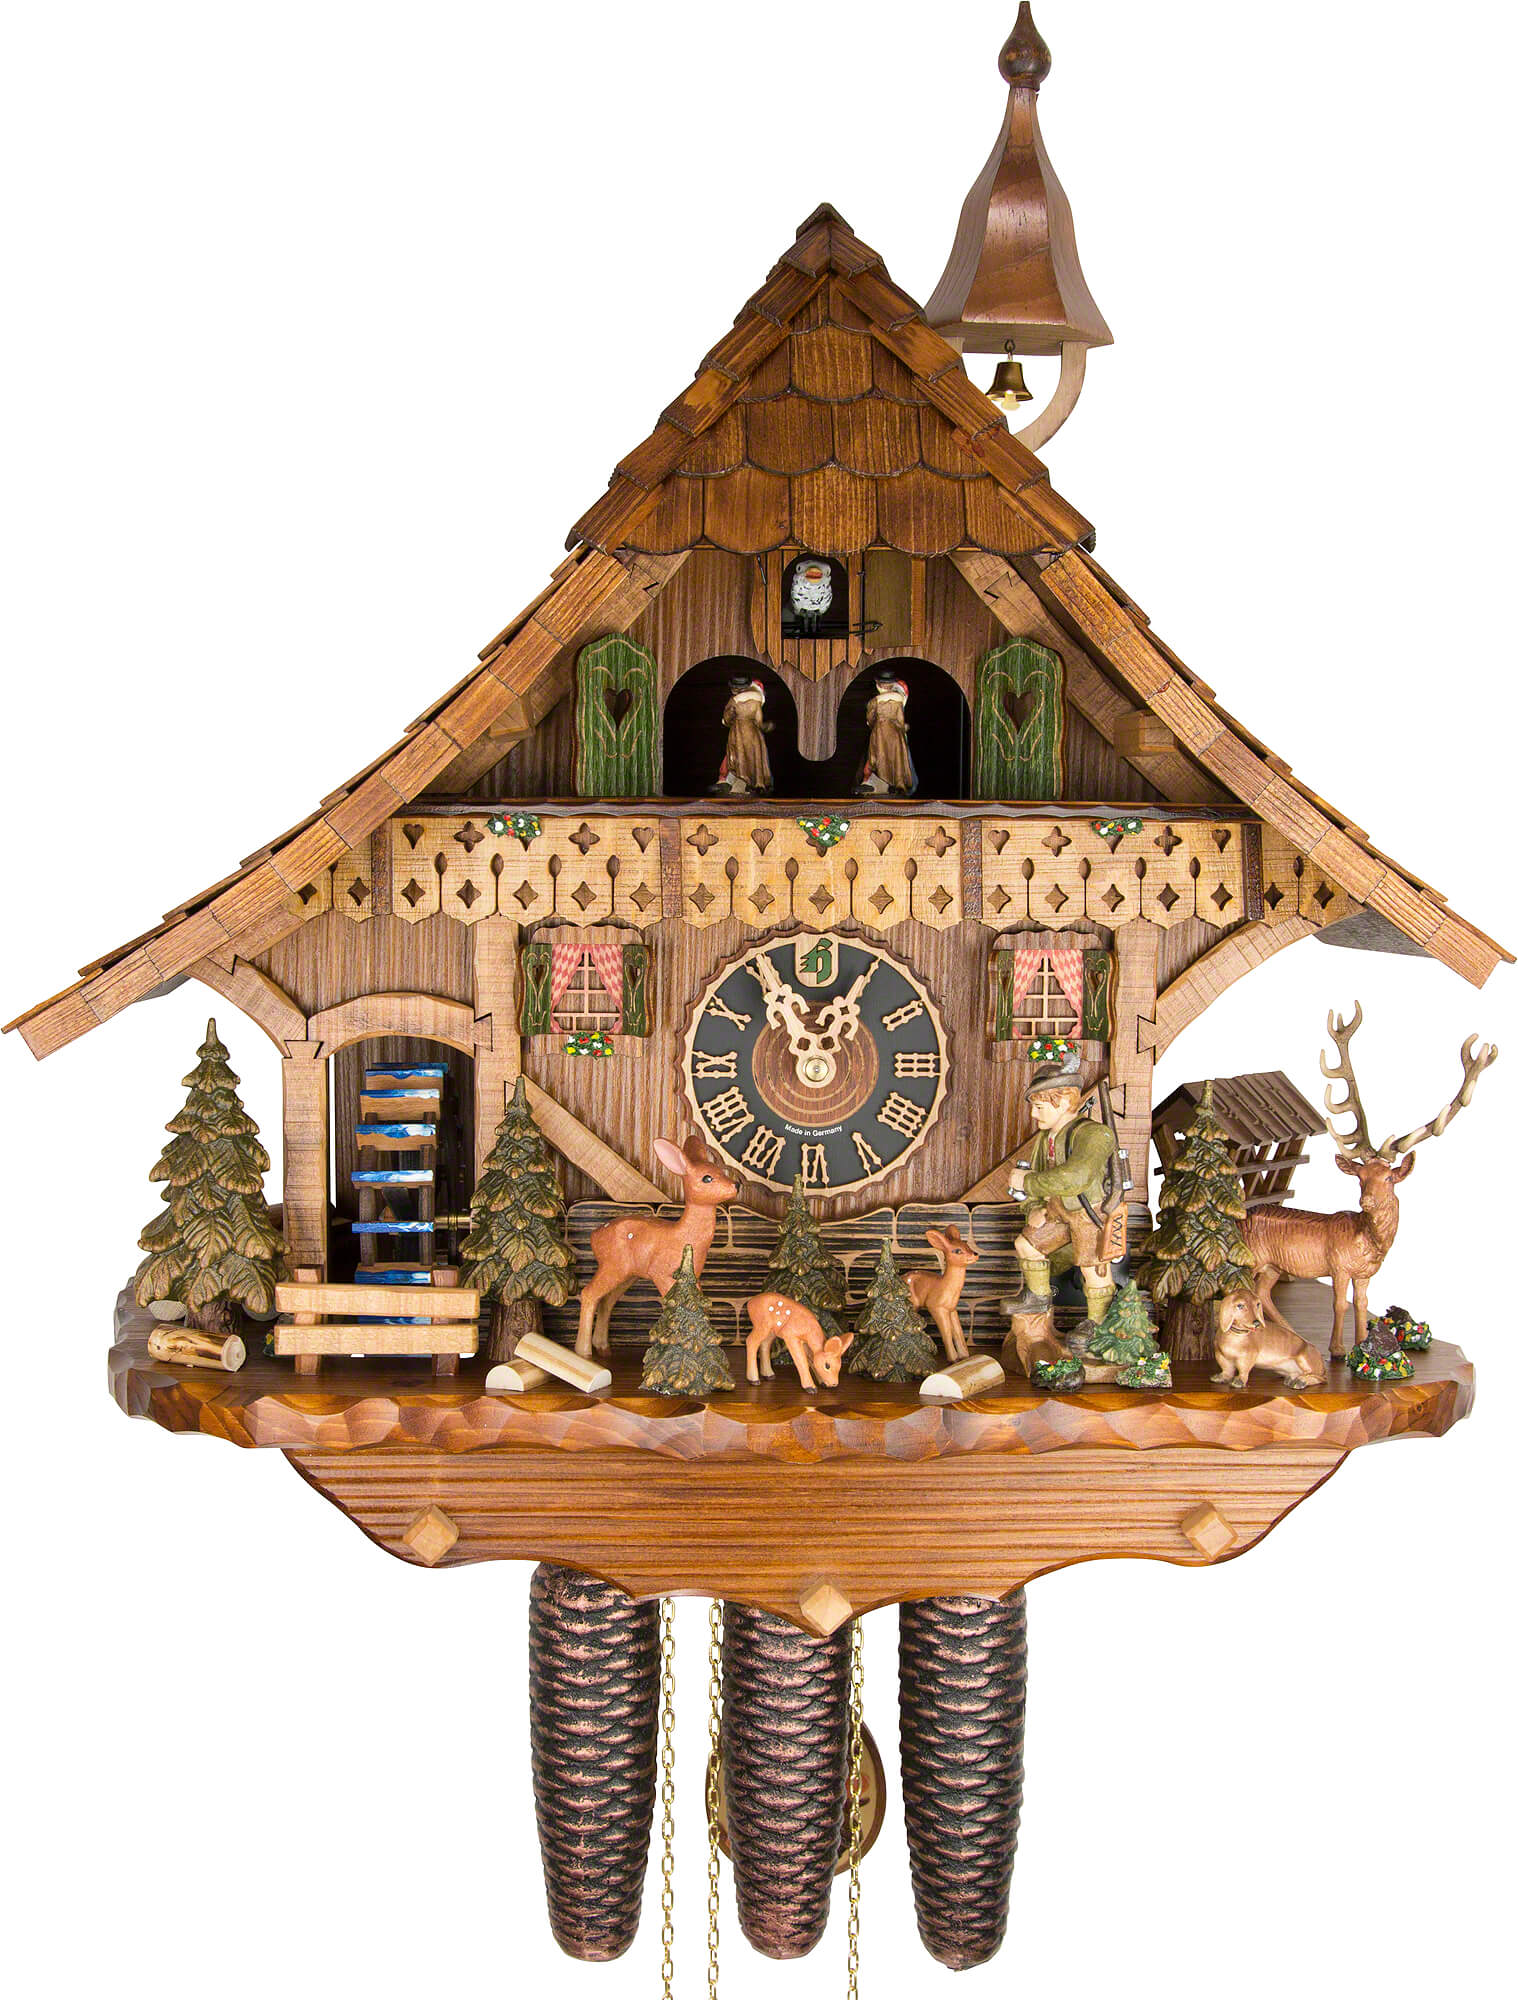 Cuckoo Clock 8 Day Movement Chalet Style 54cm By H Nes